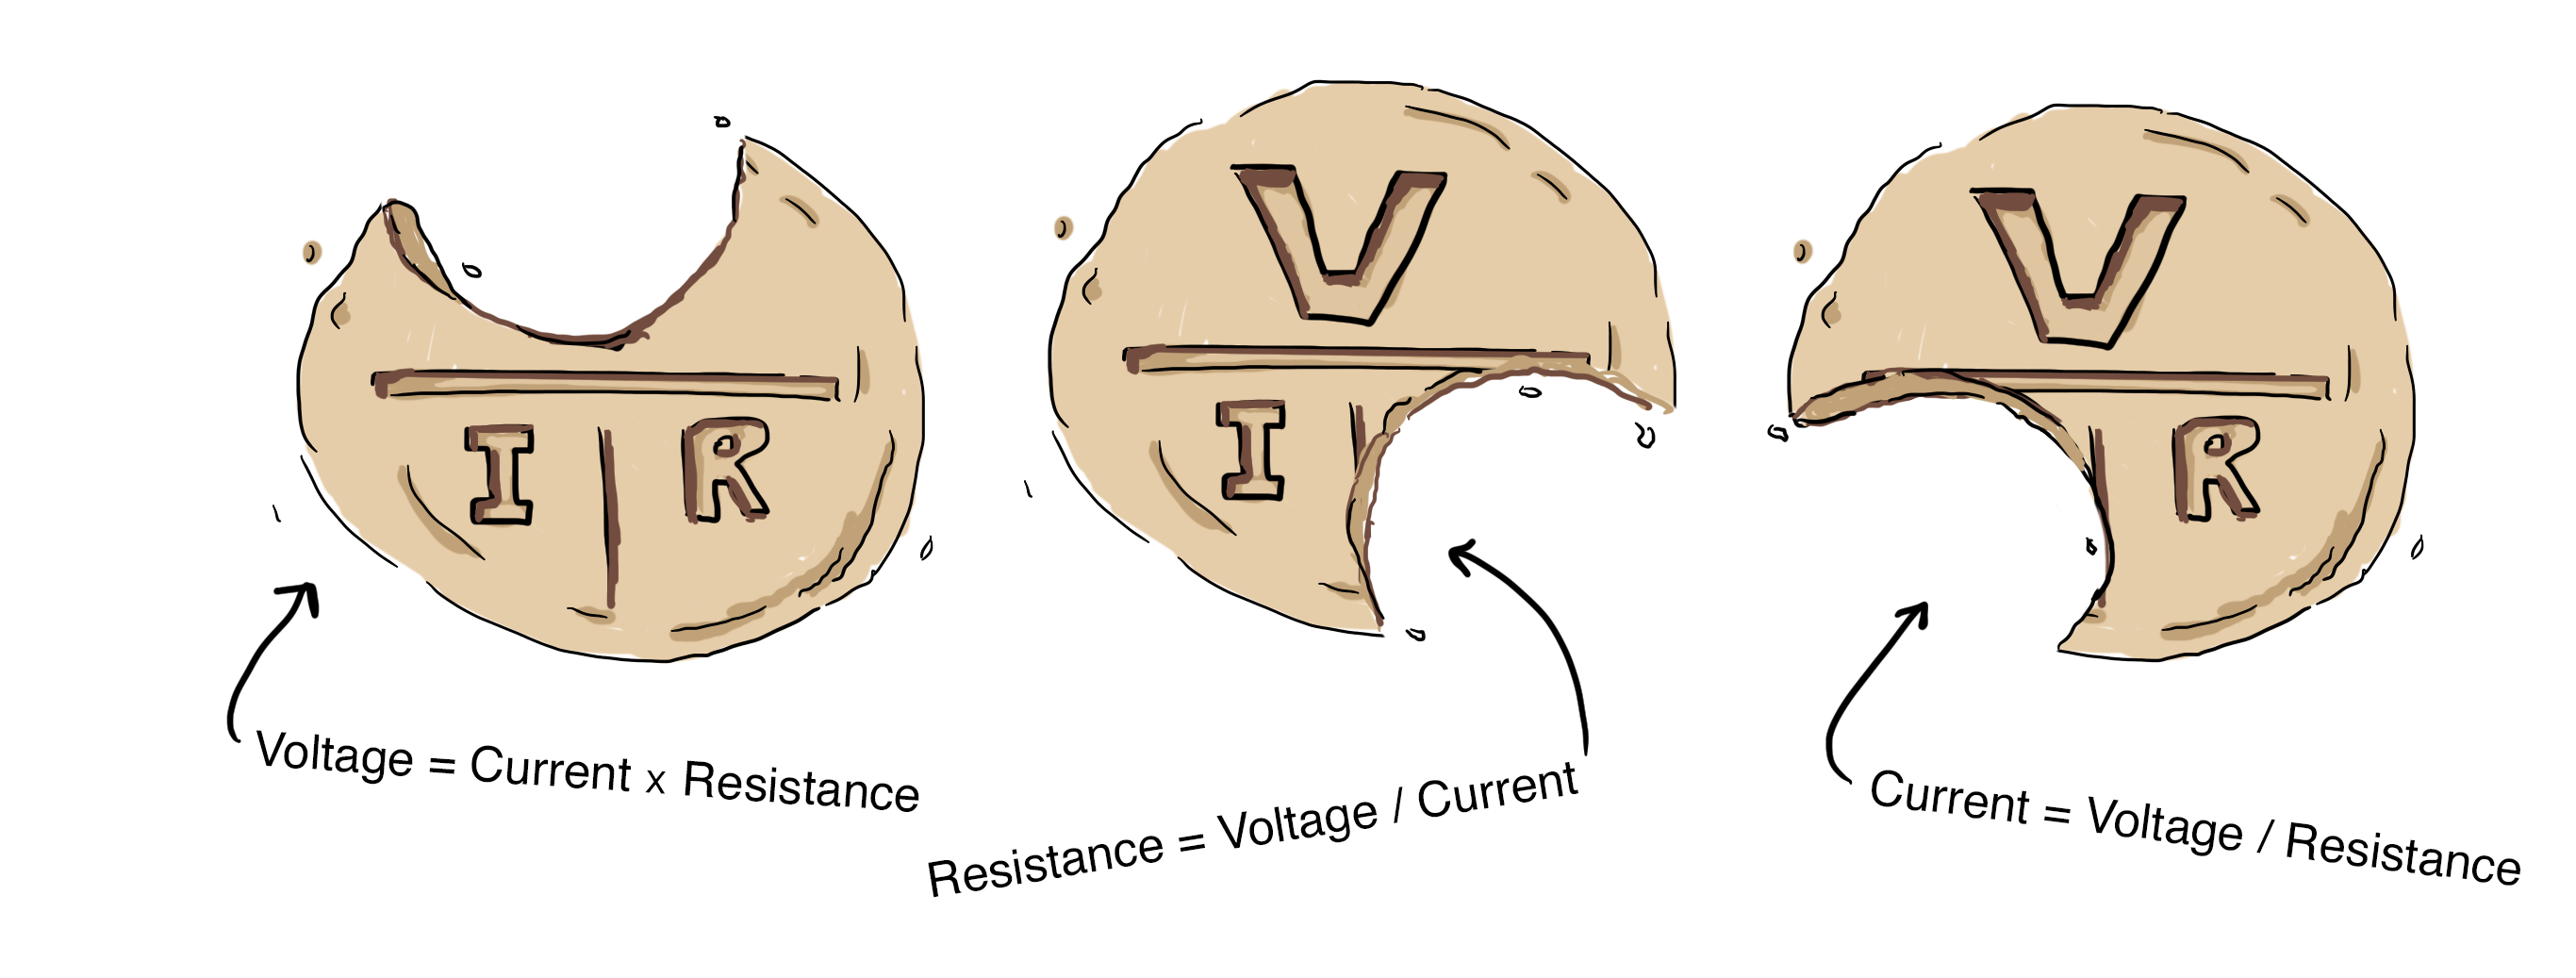 Voltage Current Resistance : Voltage current resistance…with gnomes lyza